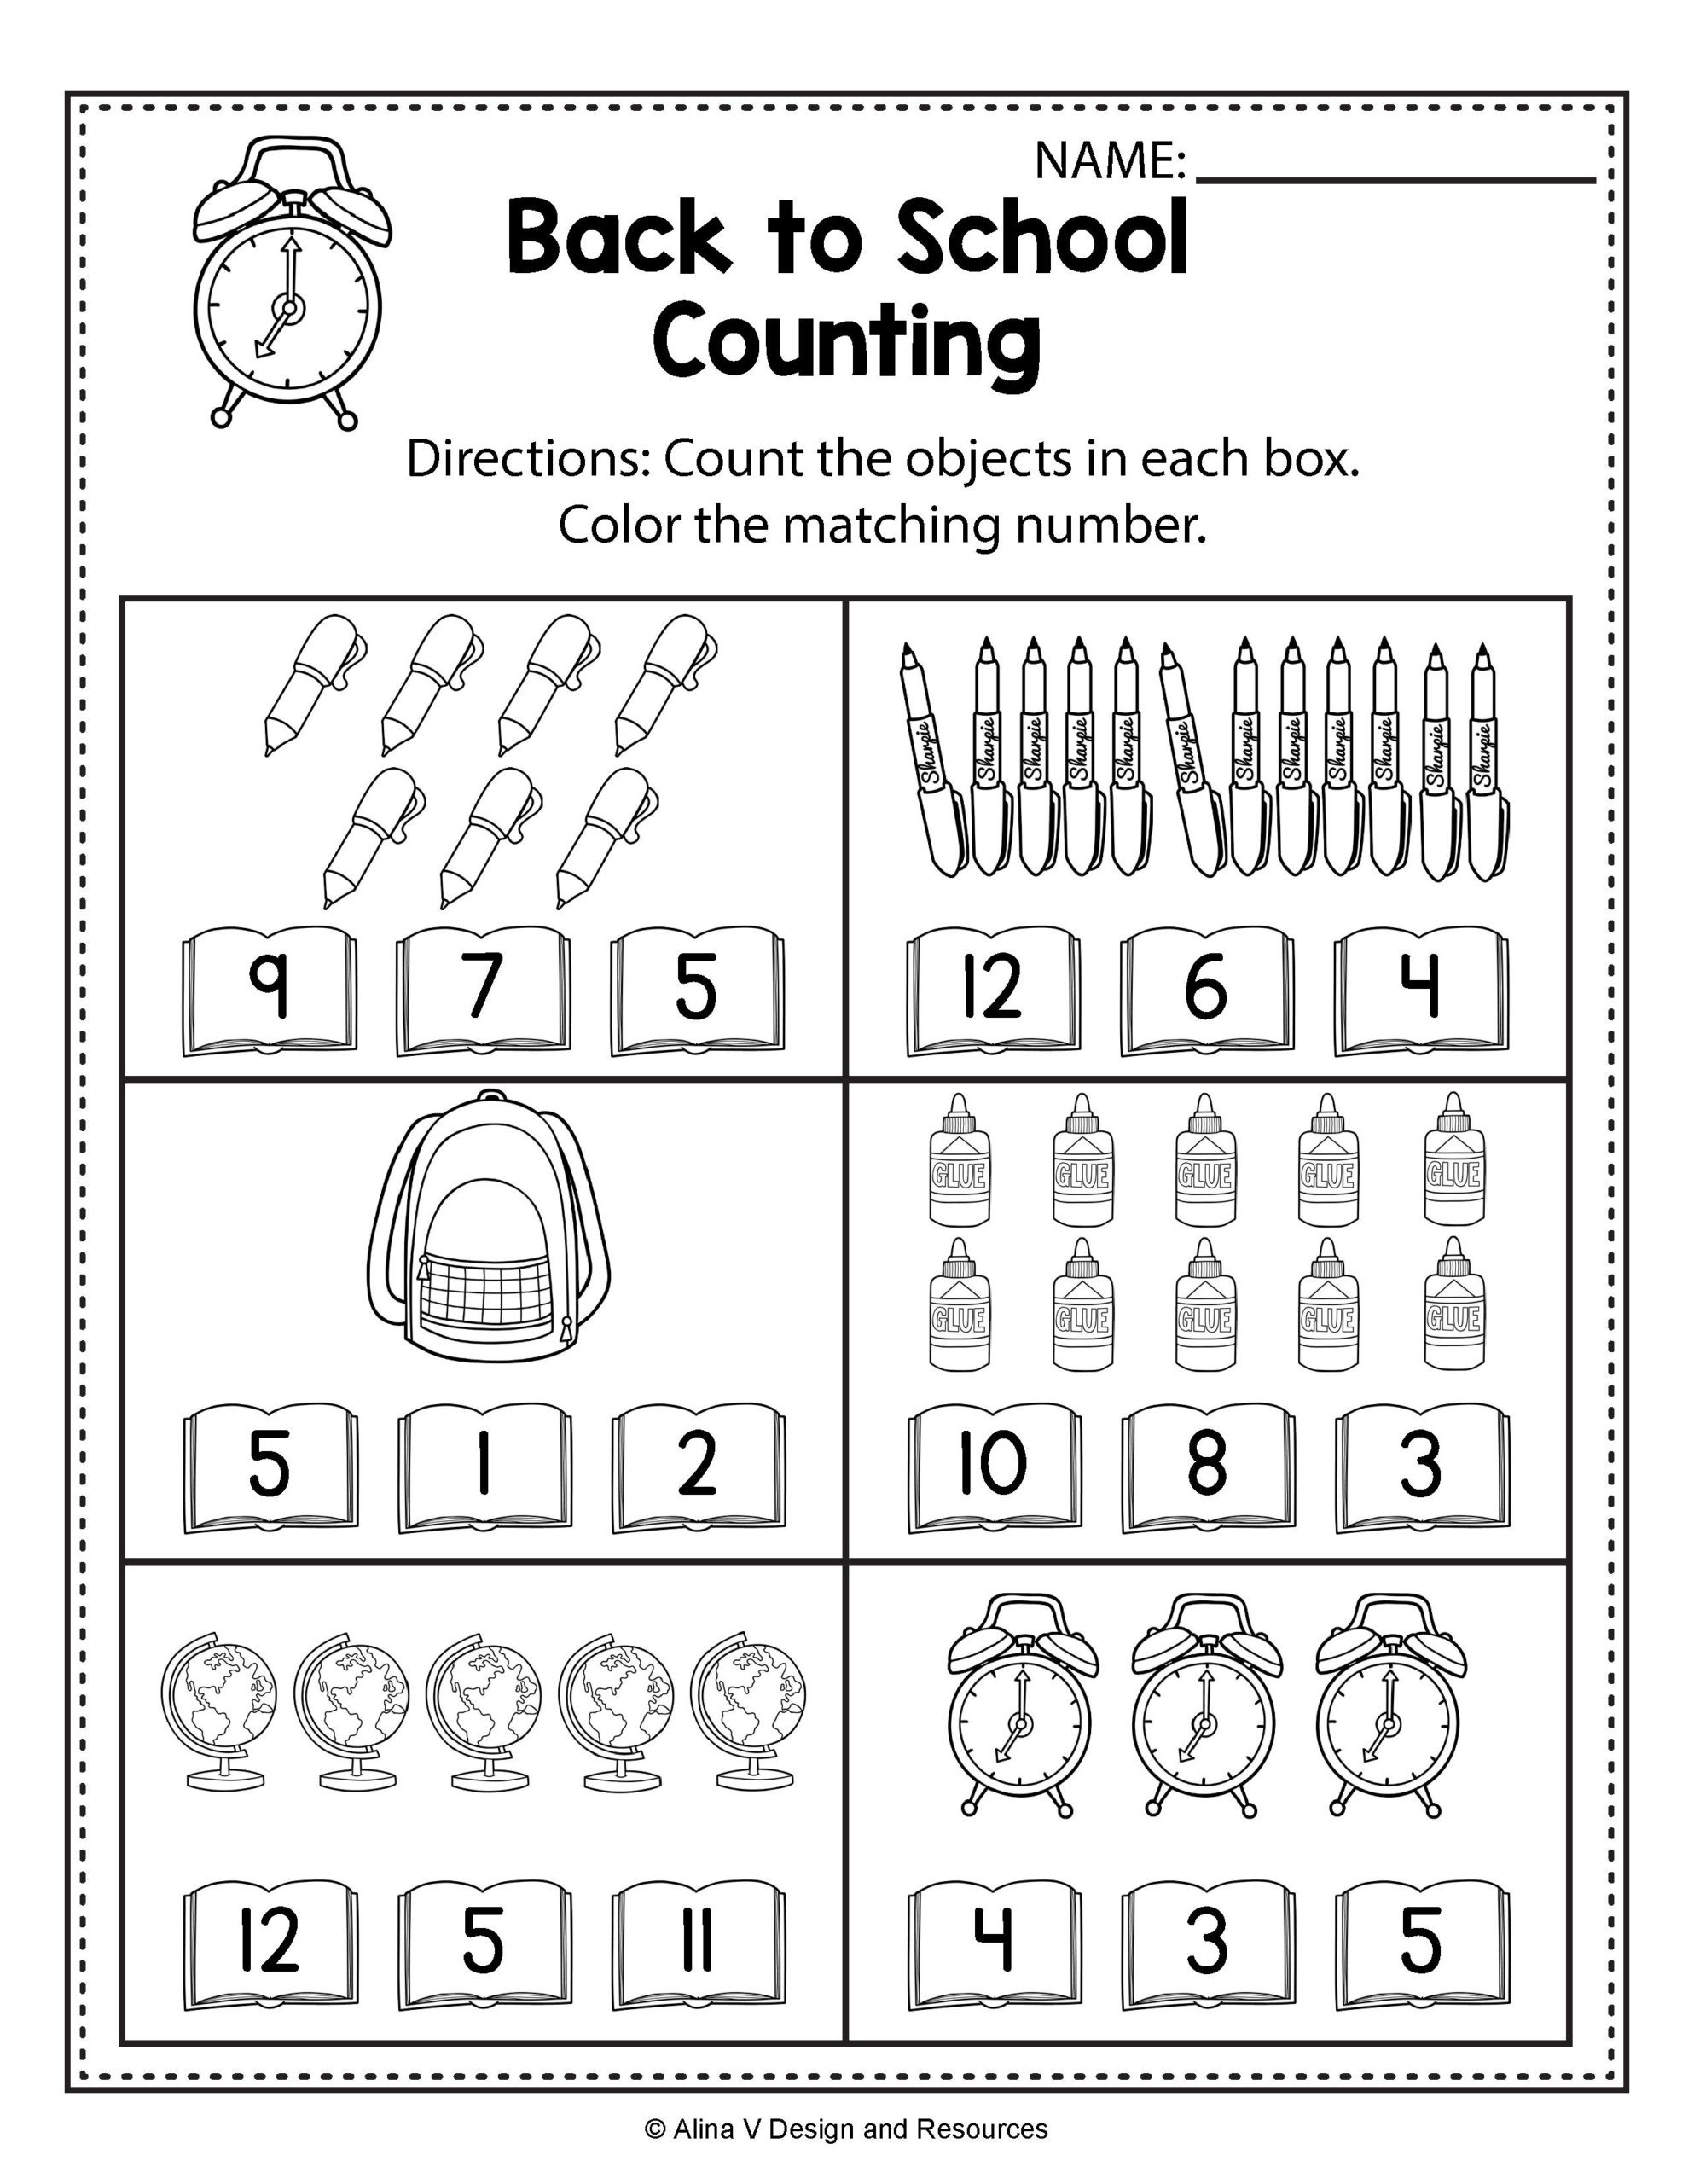 Kumon Maths Worksheets Printable Back to School Kindergarten Worksheets Counting Numbers for